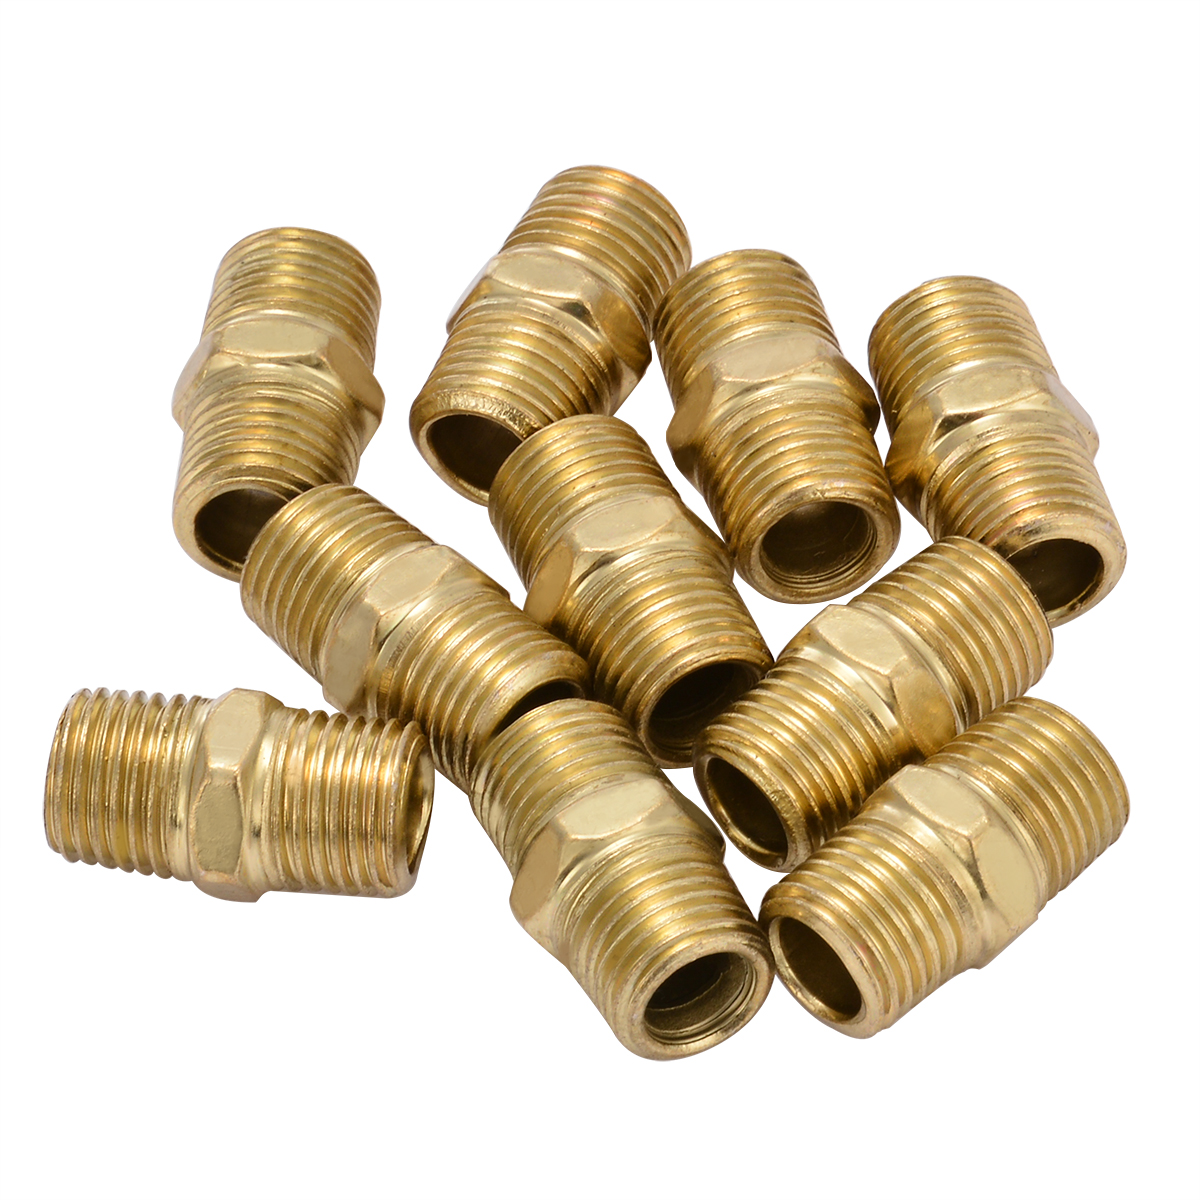 цена 10pcs 1/4 BSP Male Thread Quick Coupler Euro Air Line Hose Fitting Connector Quick Release Connectors 27x15mm